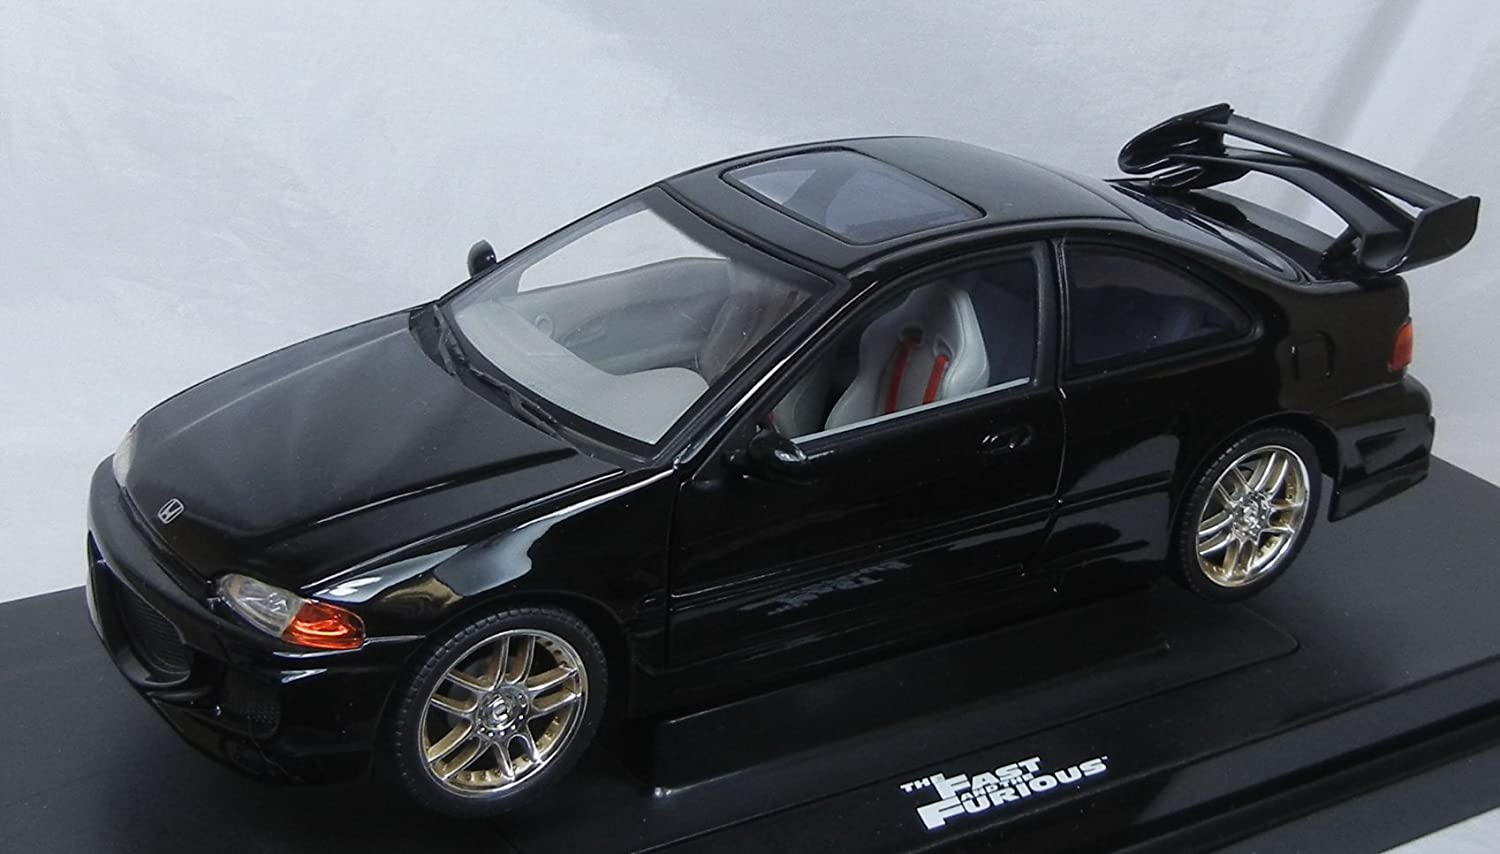 B000096PPJ The Fast and the Furious 1995 Honda Civic Diecast Race Car 1:18 Scale by Ertl [並行輸入品] 71nOxI0s04L.SL1500_